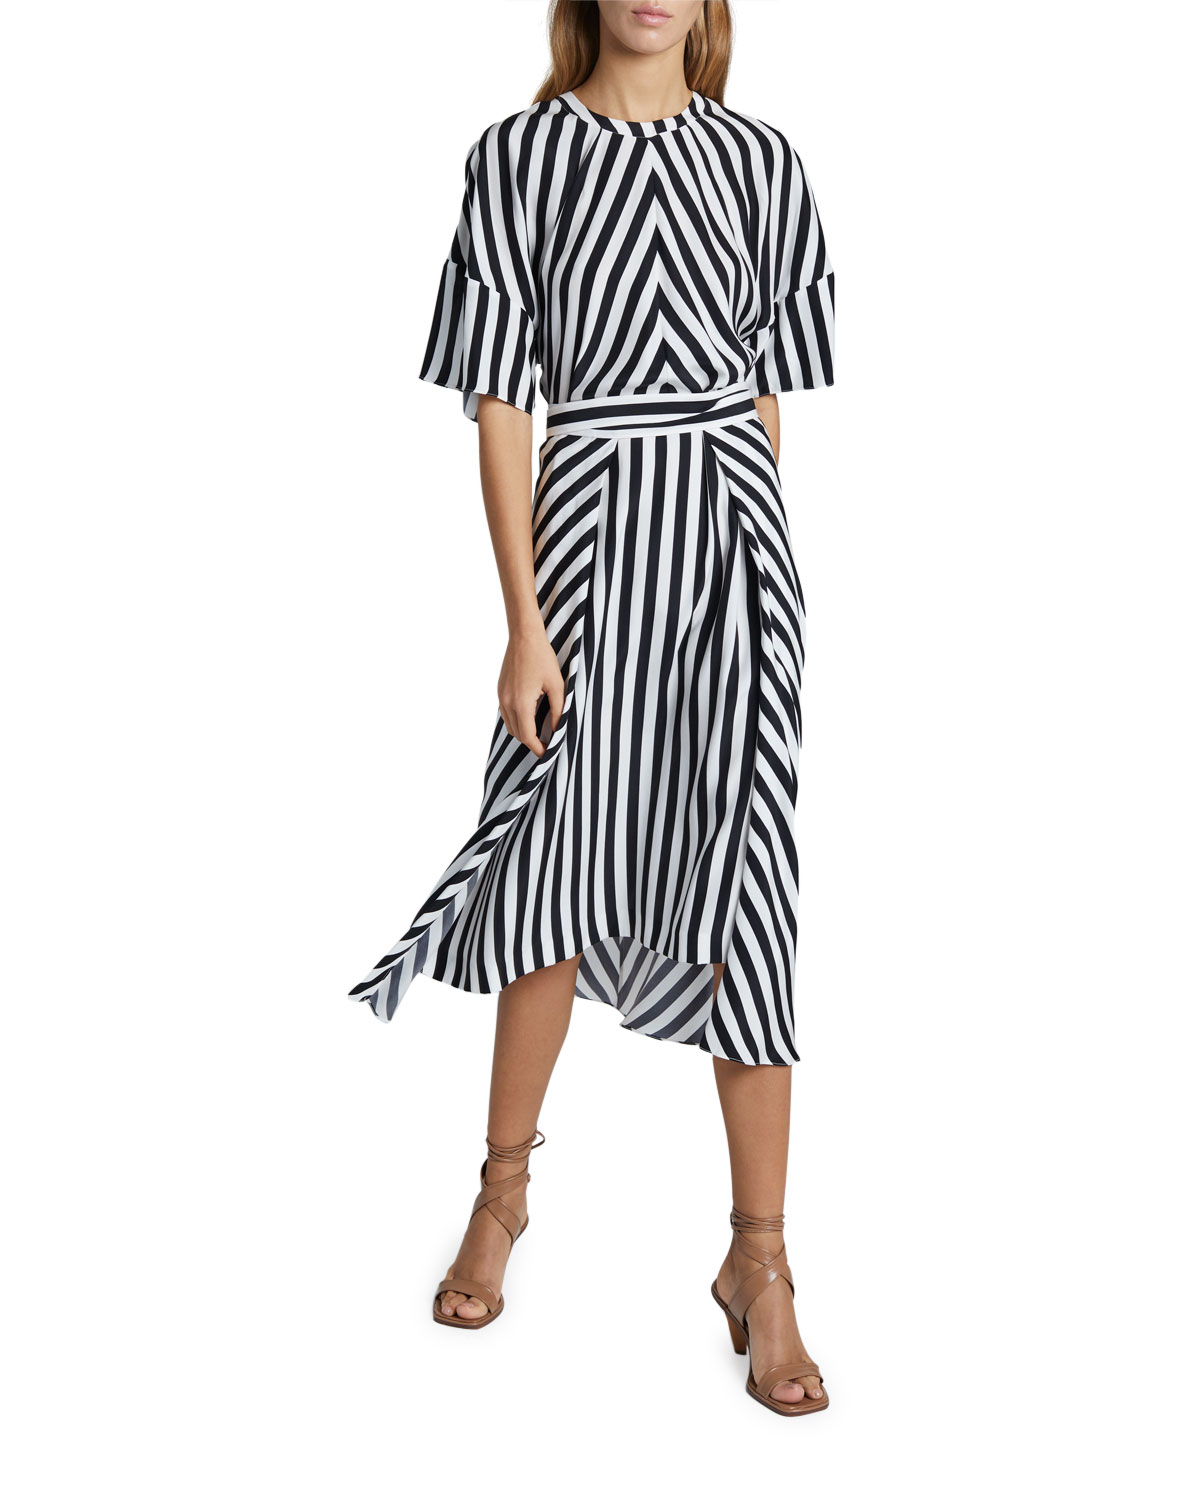 Stella McCartney Striped Short-Sleeve Midi Dress with Belt